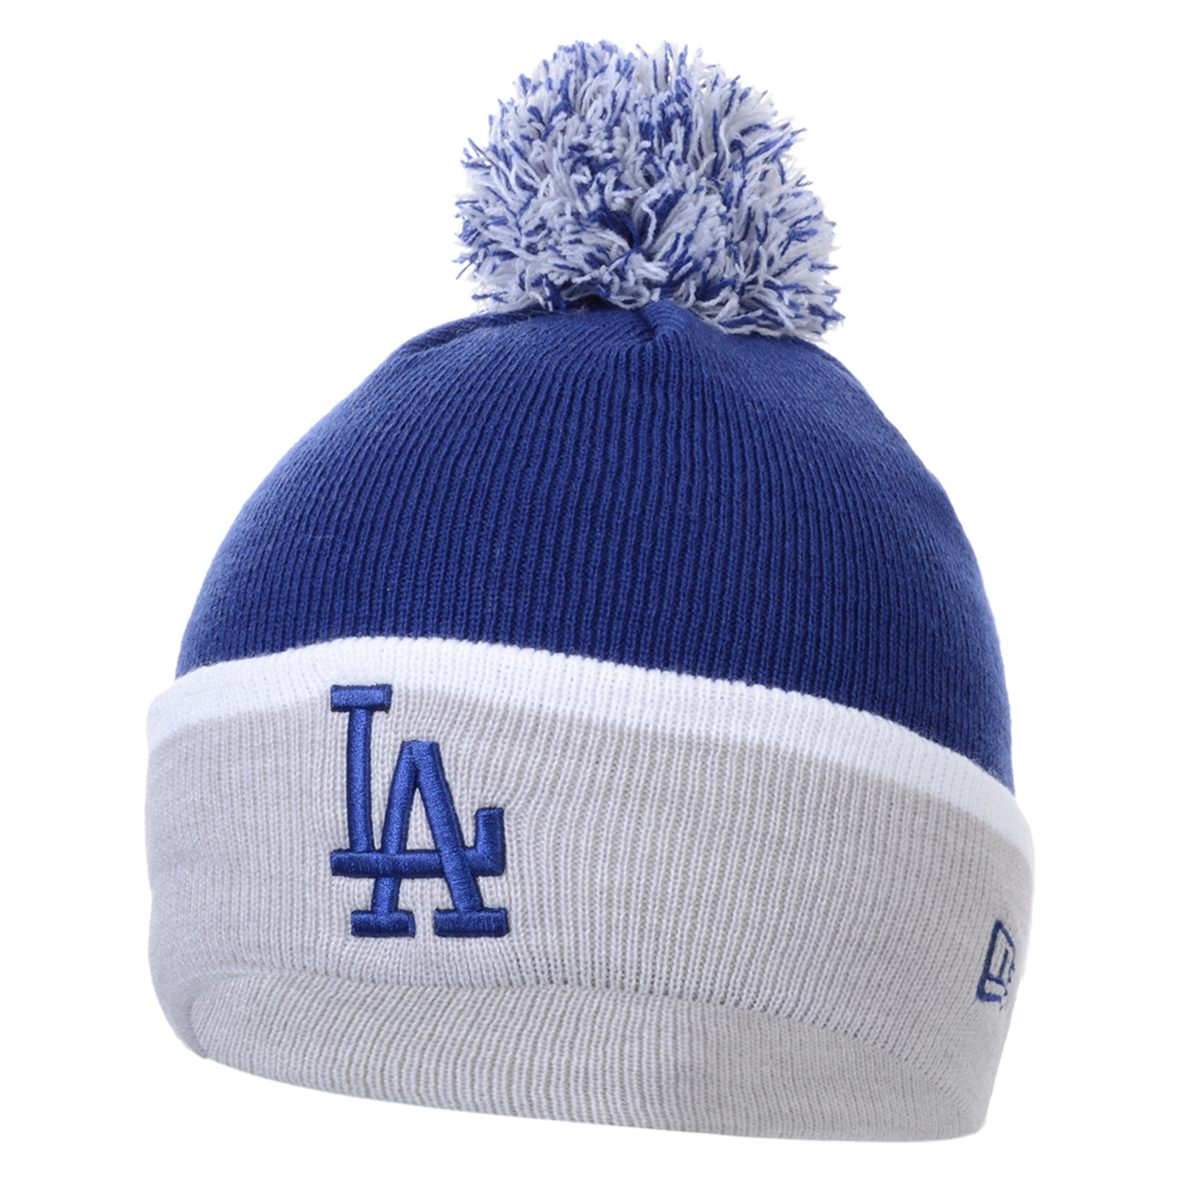 7ee7767e56a61 gorro masculino new era mlb team cuff los angeles dodgers. Carregando zoom.